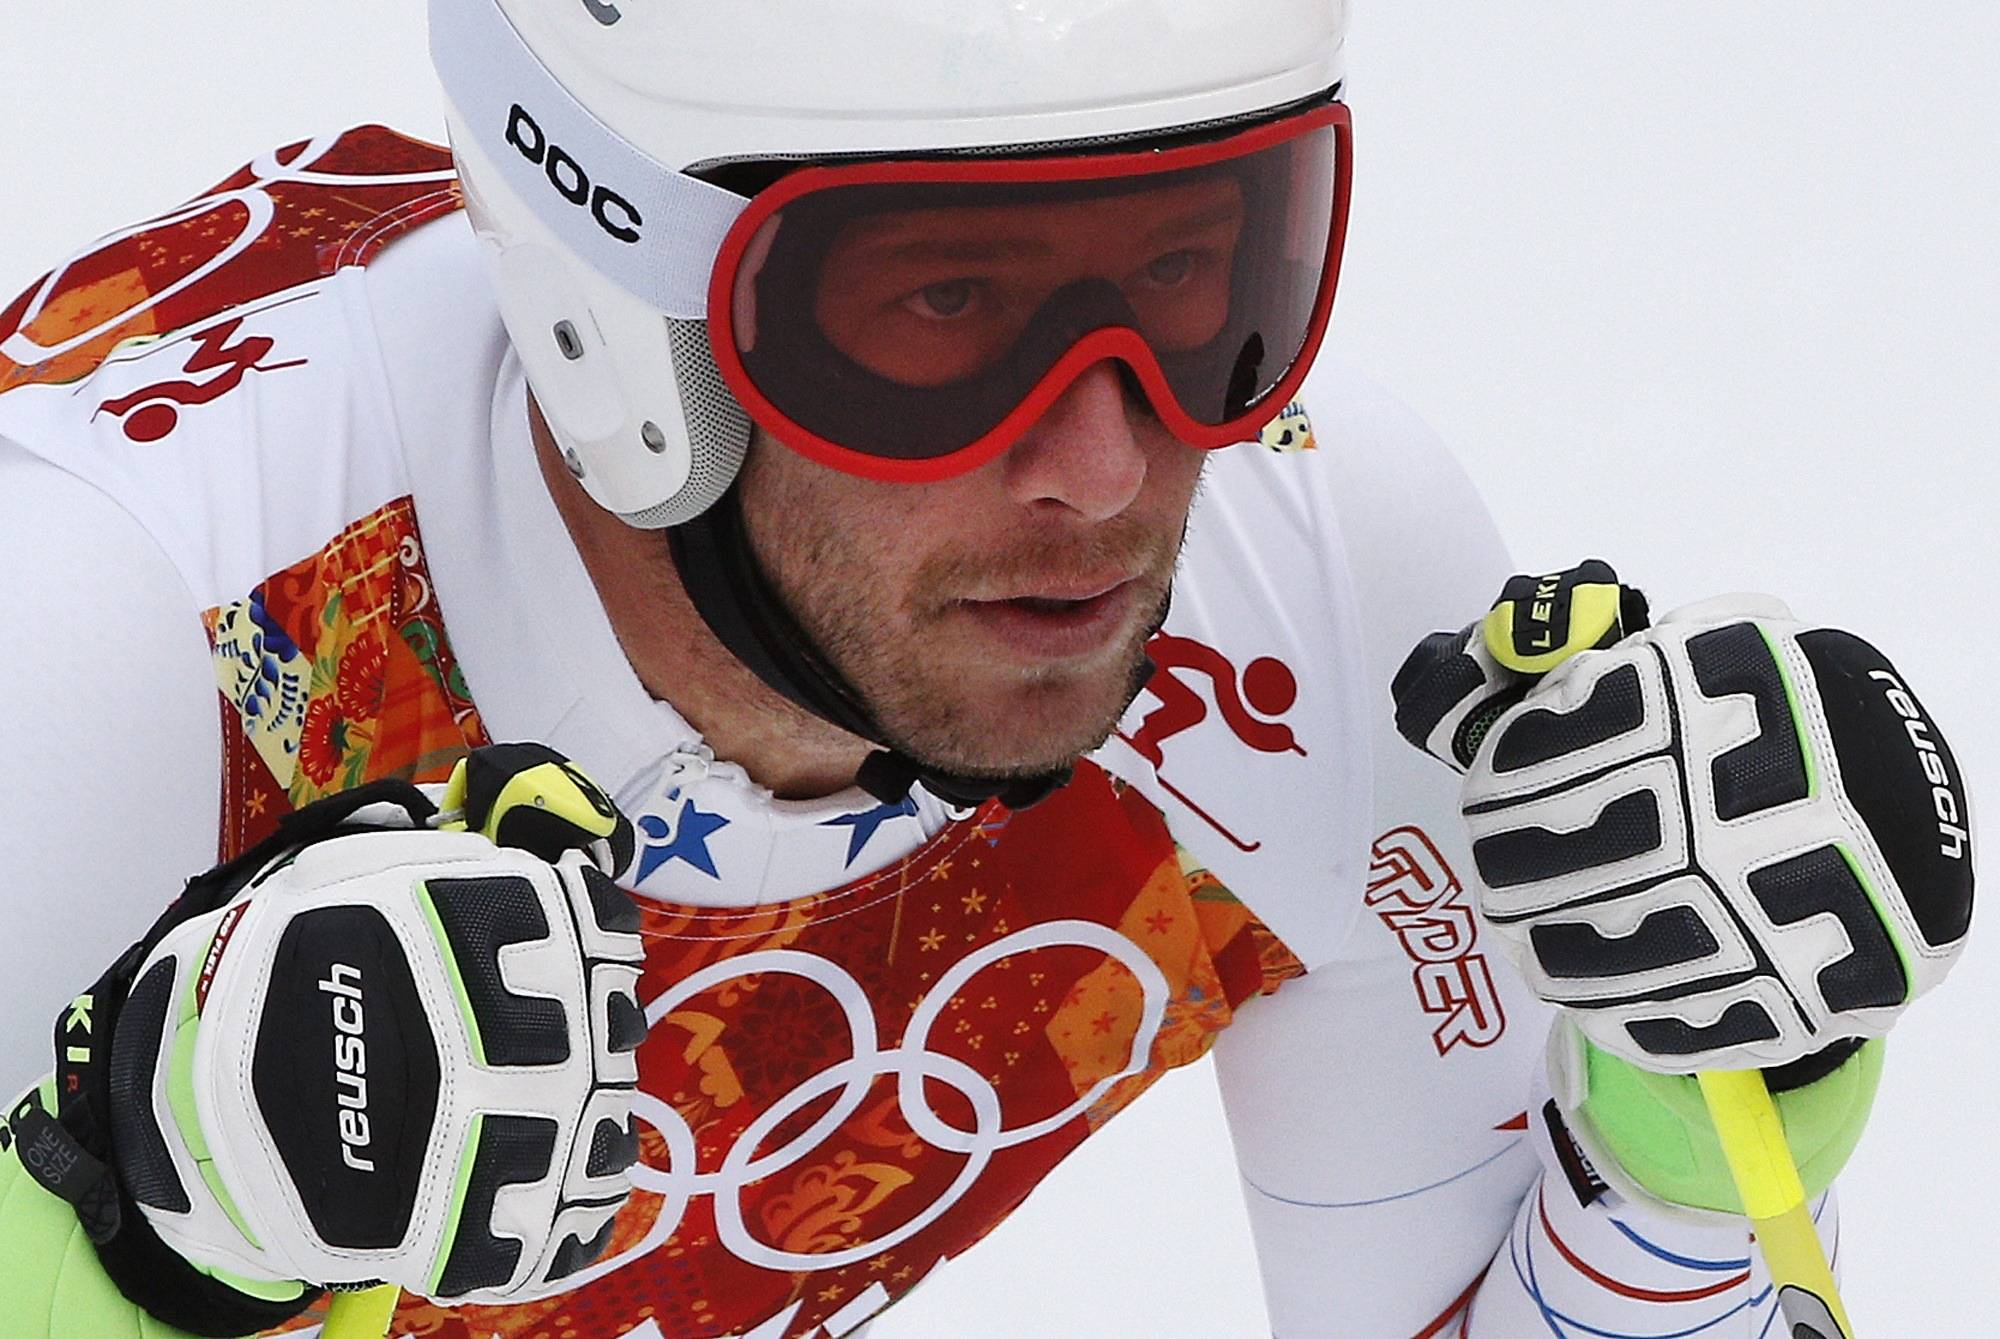 United States skier Bode Miller pauses Tuesday in the finish area after completing Men's super combined downhill training at the Sochi 2014 Winter Olympics in Krasnaya Polyana, Russia.